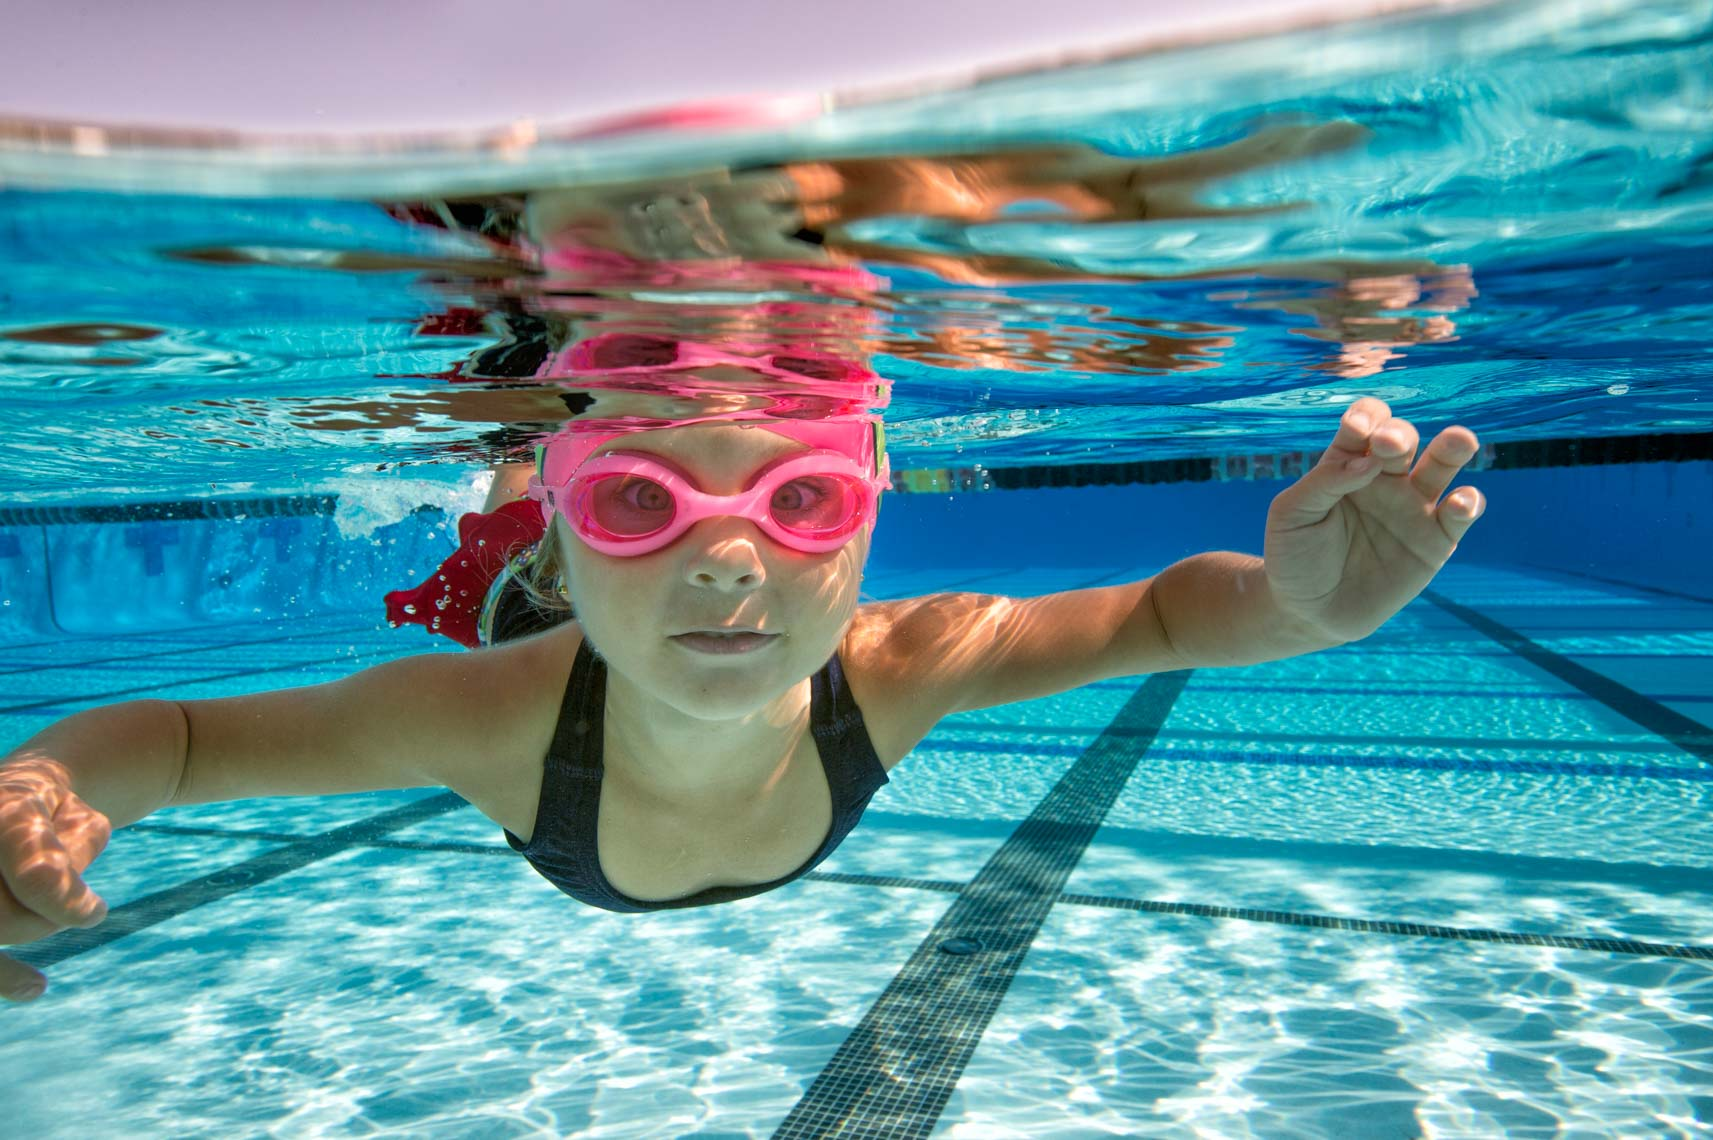 underwater girl swimmer